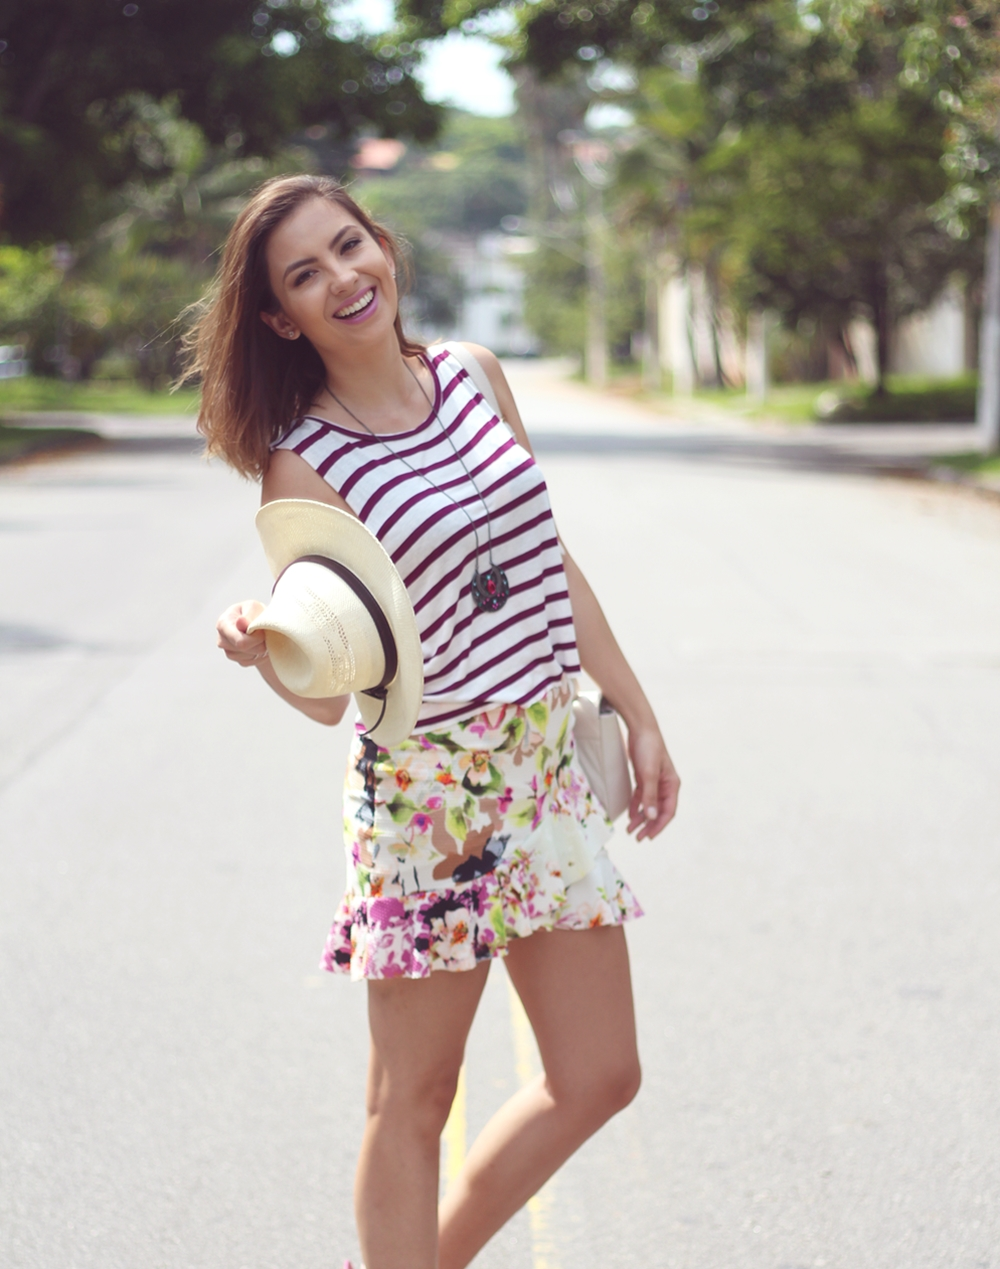 vanduarte-mix-estampas-listras-floral-look3-12